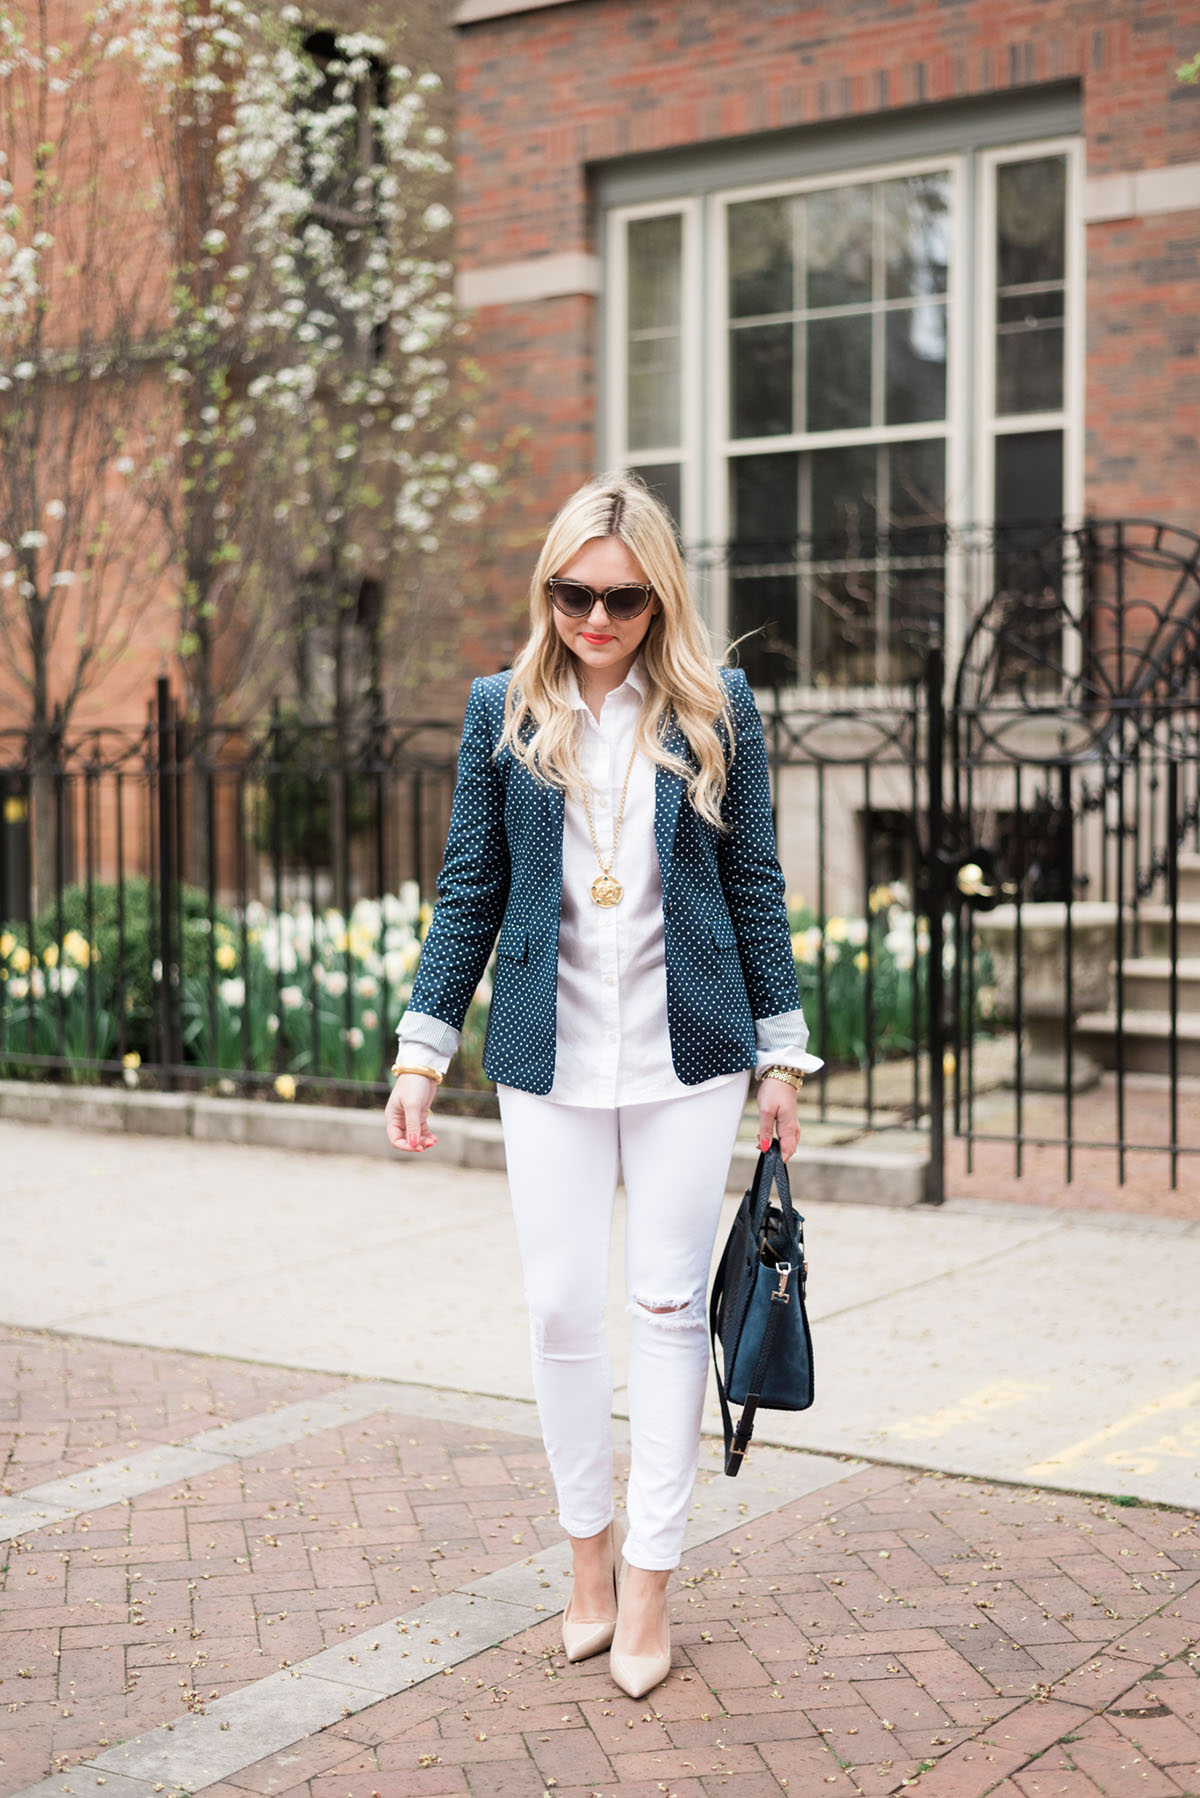 Fashion blogger, Jessica Sturdy of bows & sequins, styling an office-appropriate springtime outfit with white jeans.